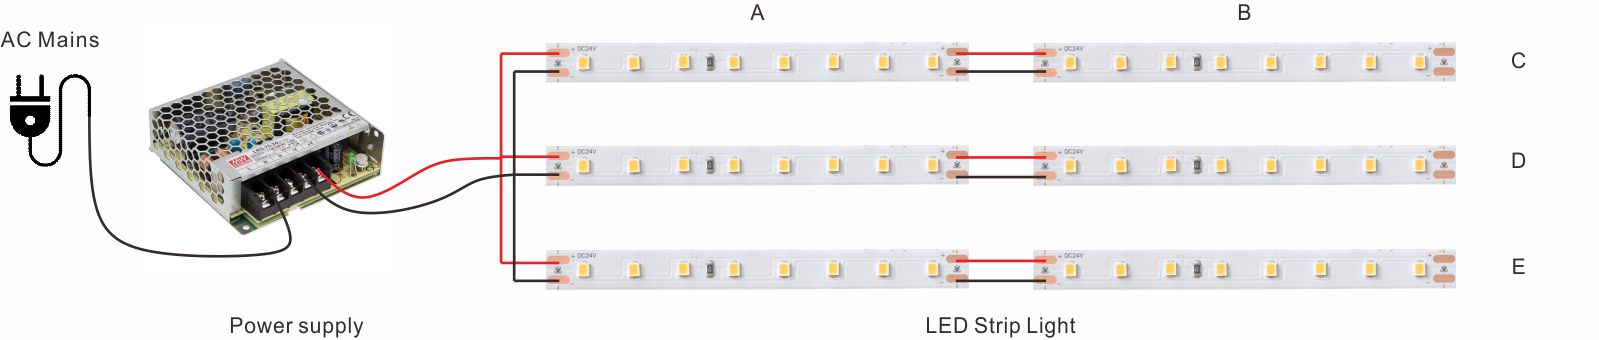 wiring installation guide of LED strip light for serial parallel circuit